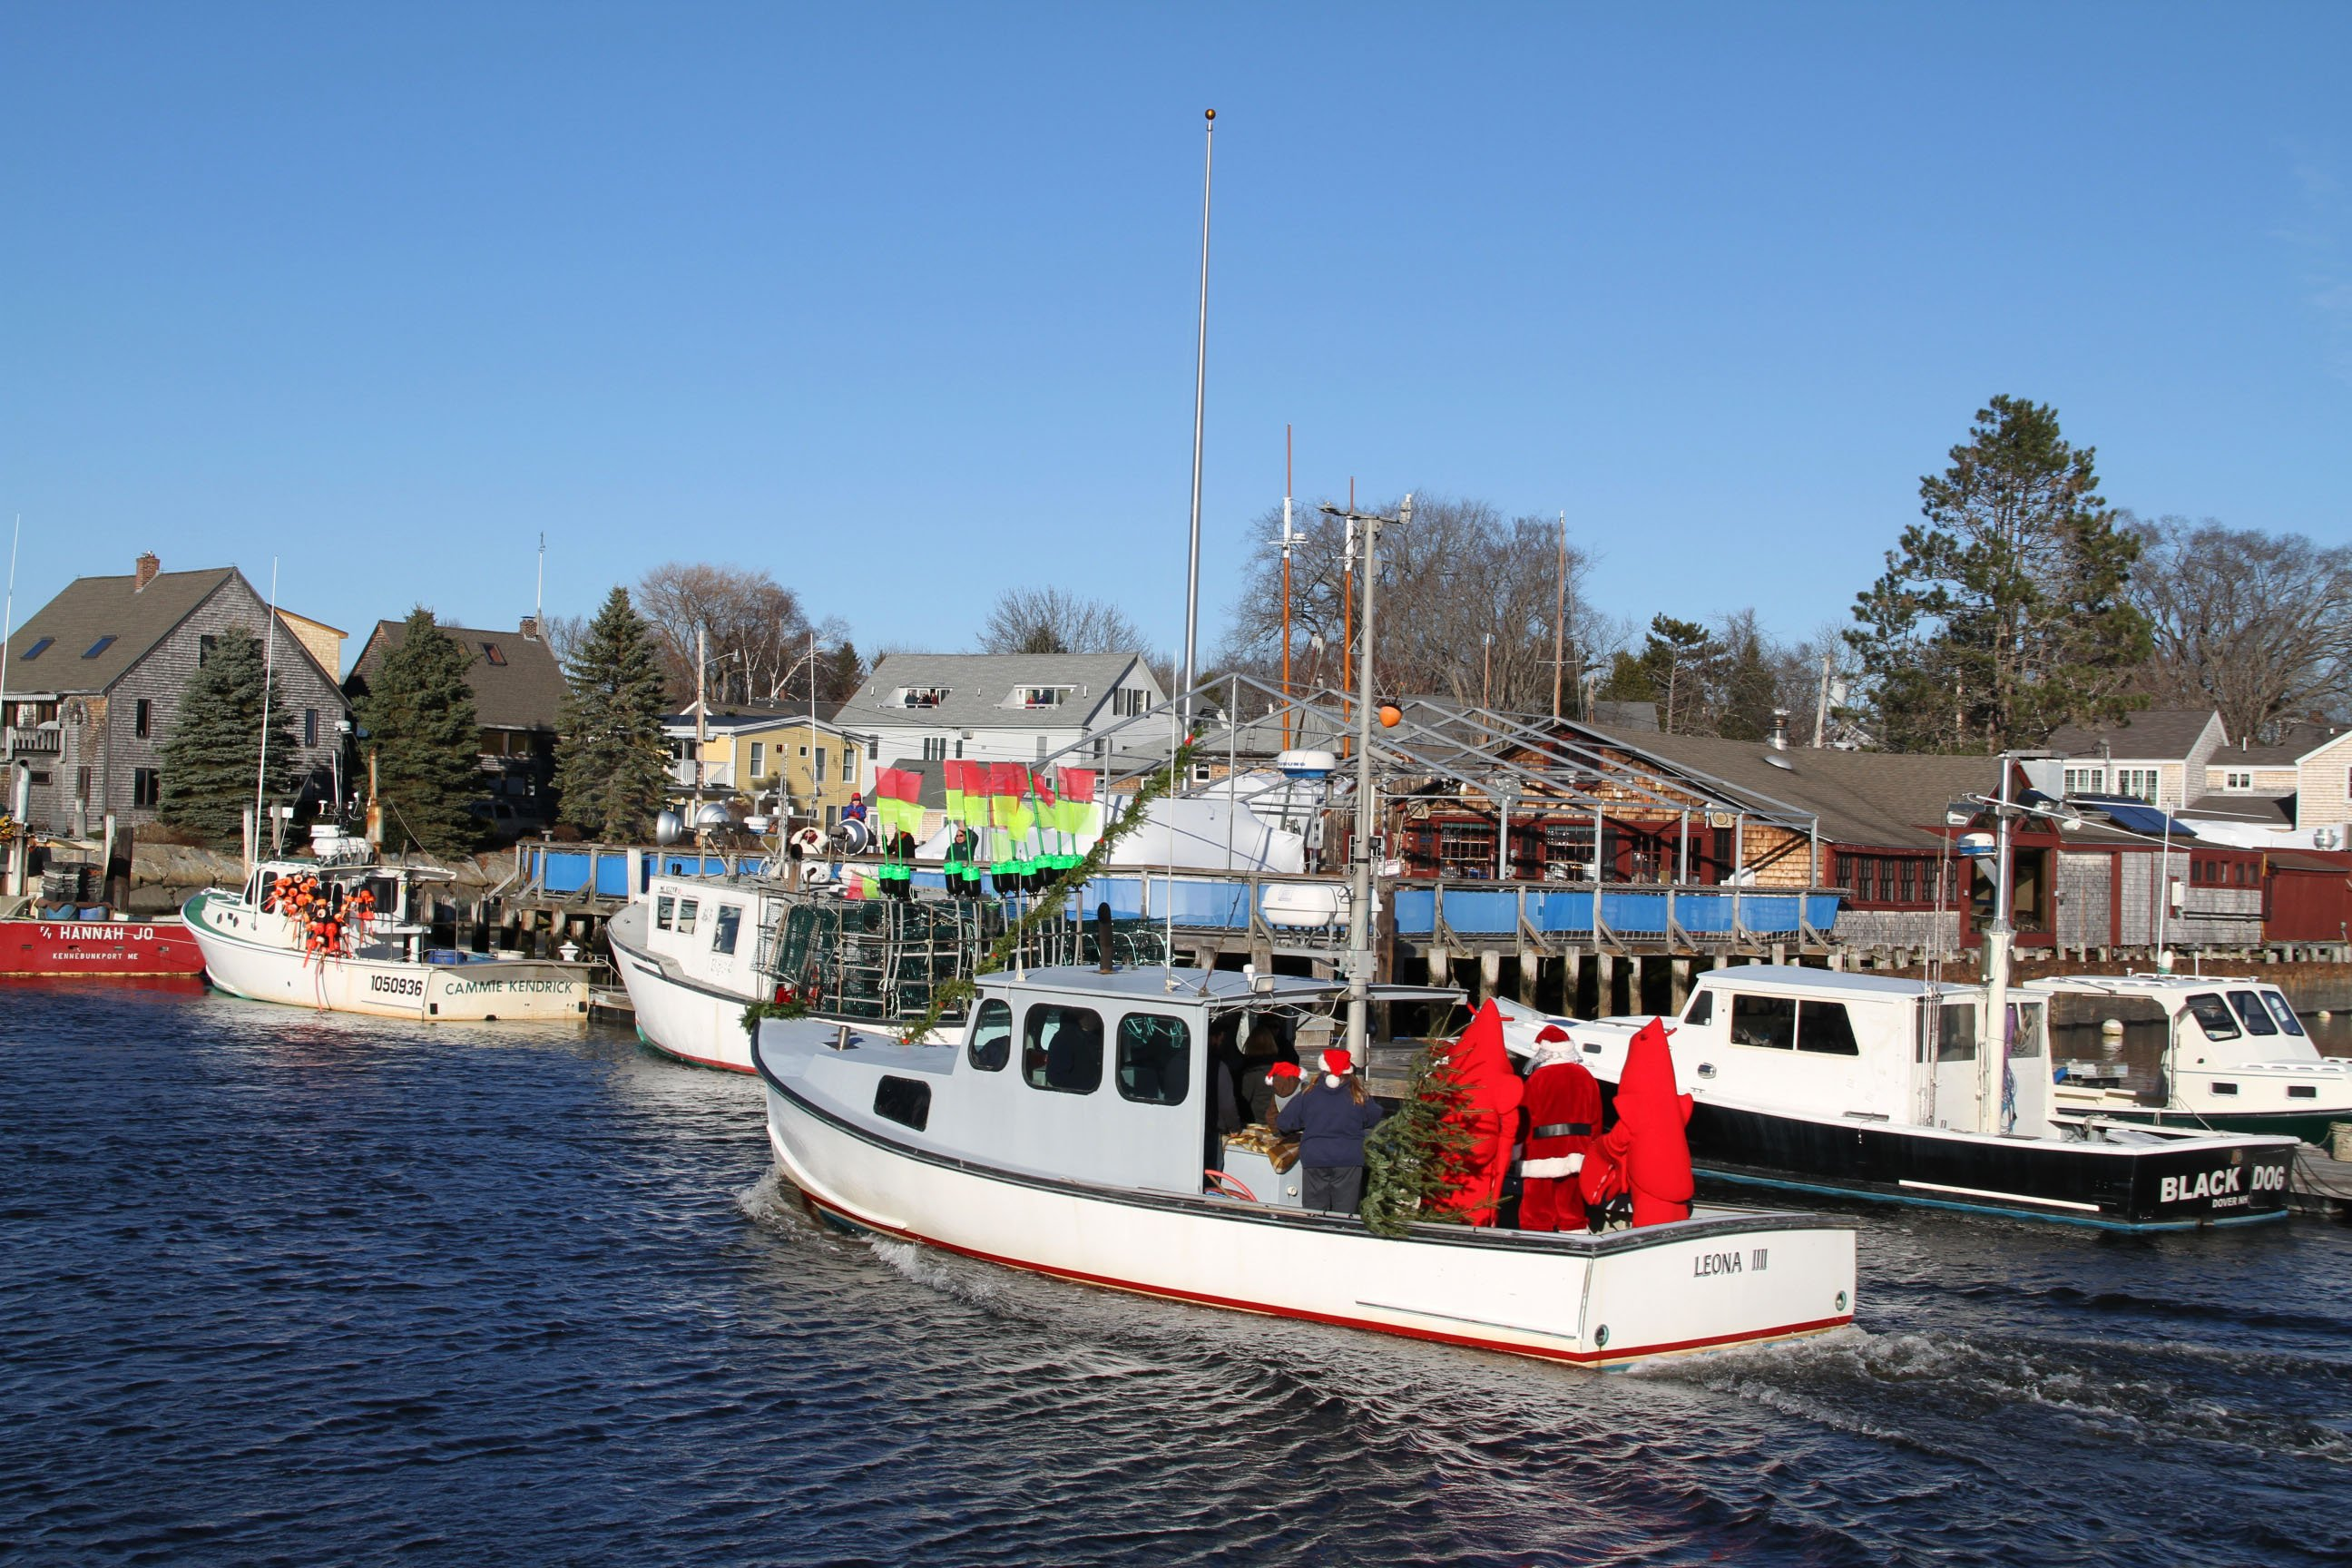 Christmas Prelude Kennebunkport - see much more at KennebunkportMaineLodging.com Site